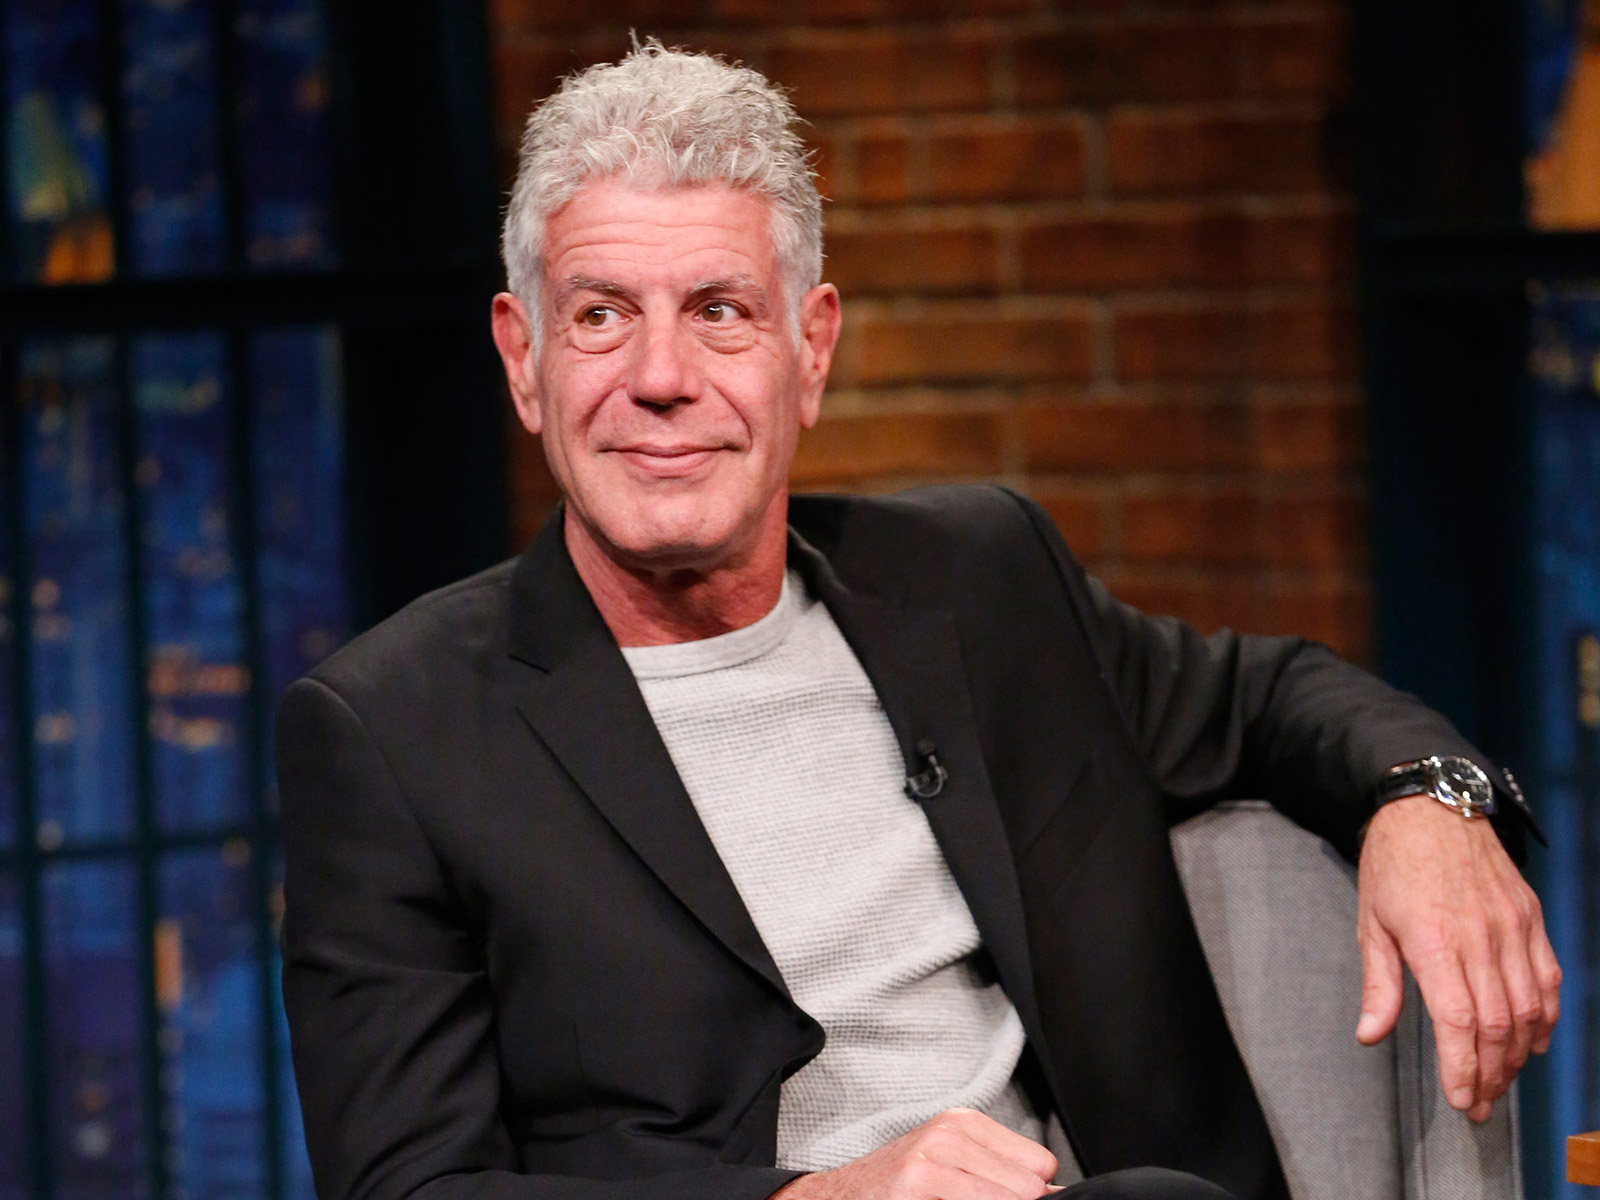 Anthony Bourdain's Latest Comic Book Series Is Available for Pre-Order